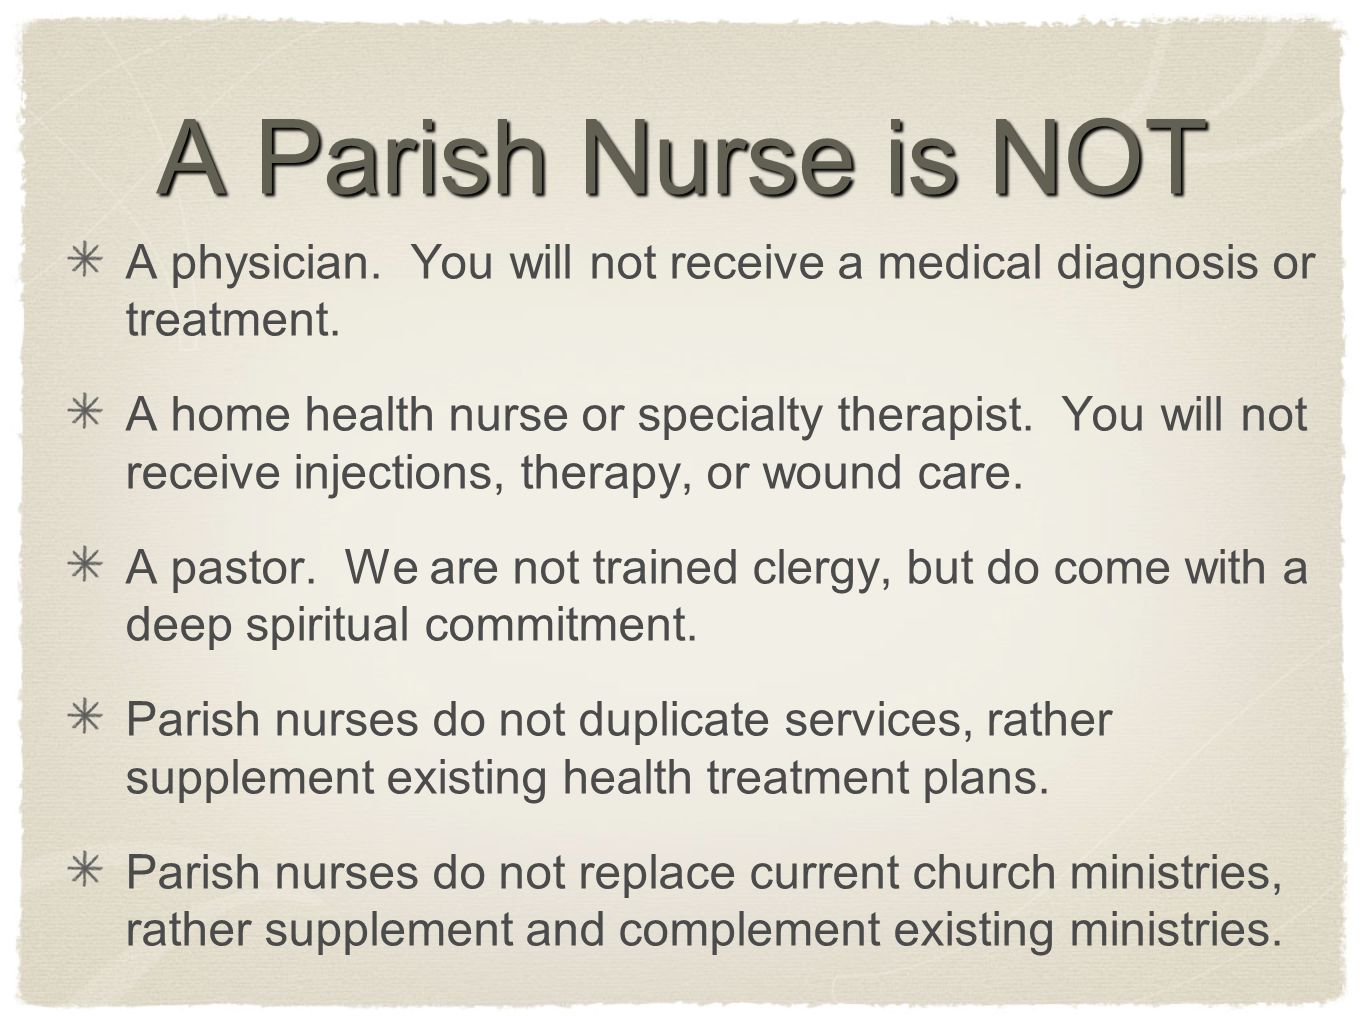 A Parish Nurse is NOT A physician. You will not receive a medical diagnosis or treatment.